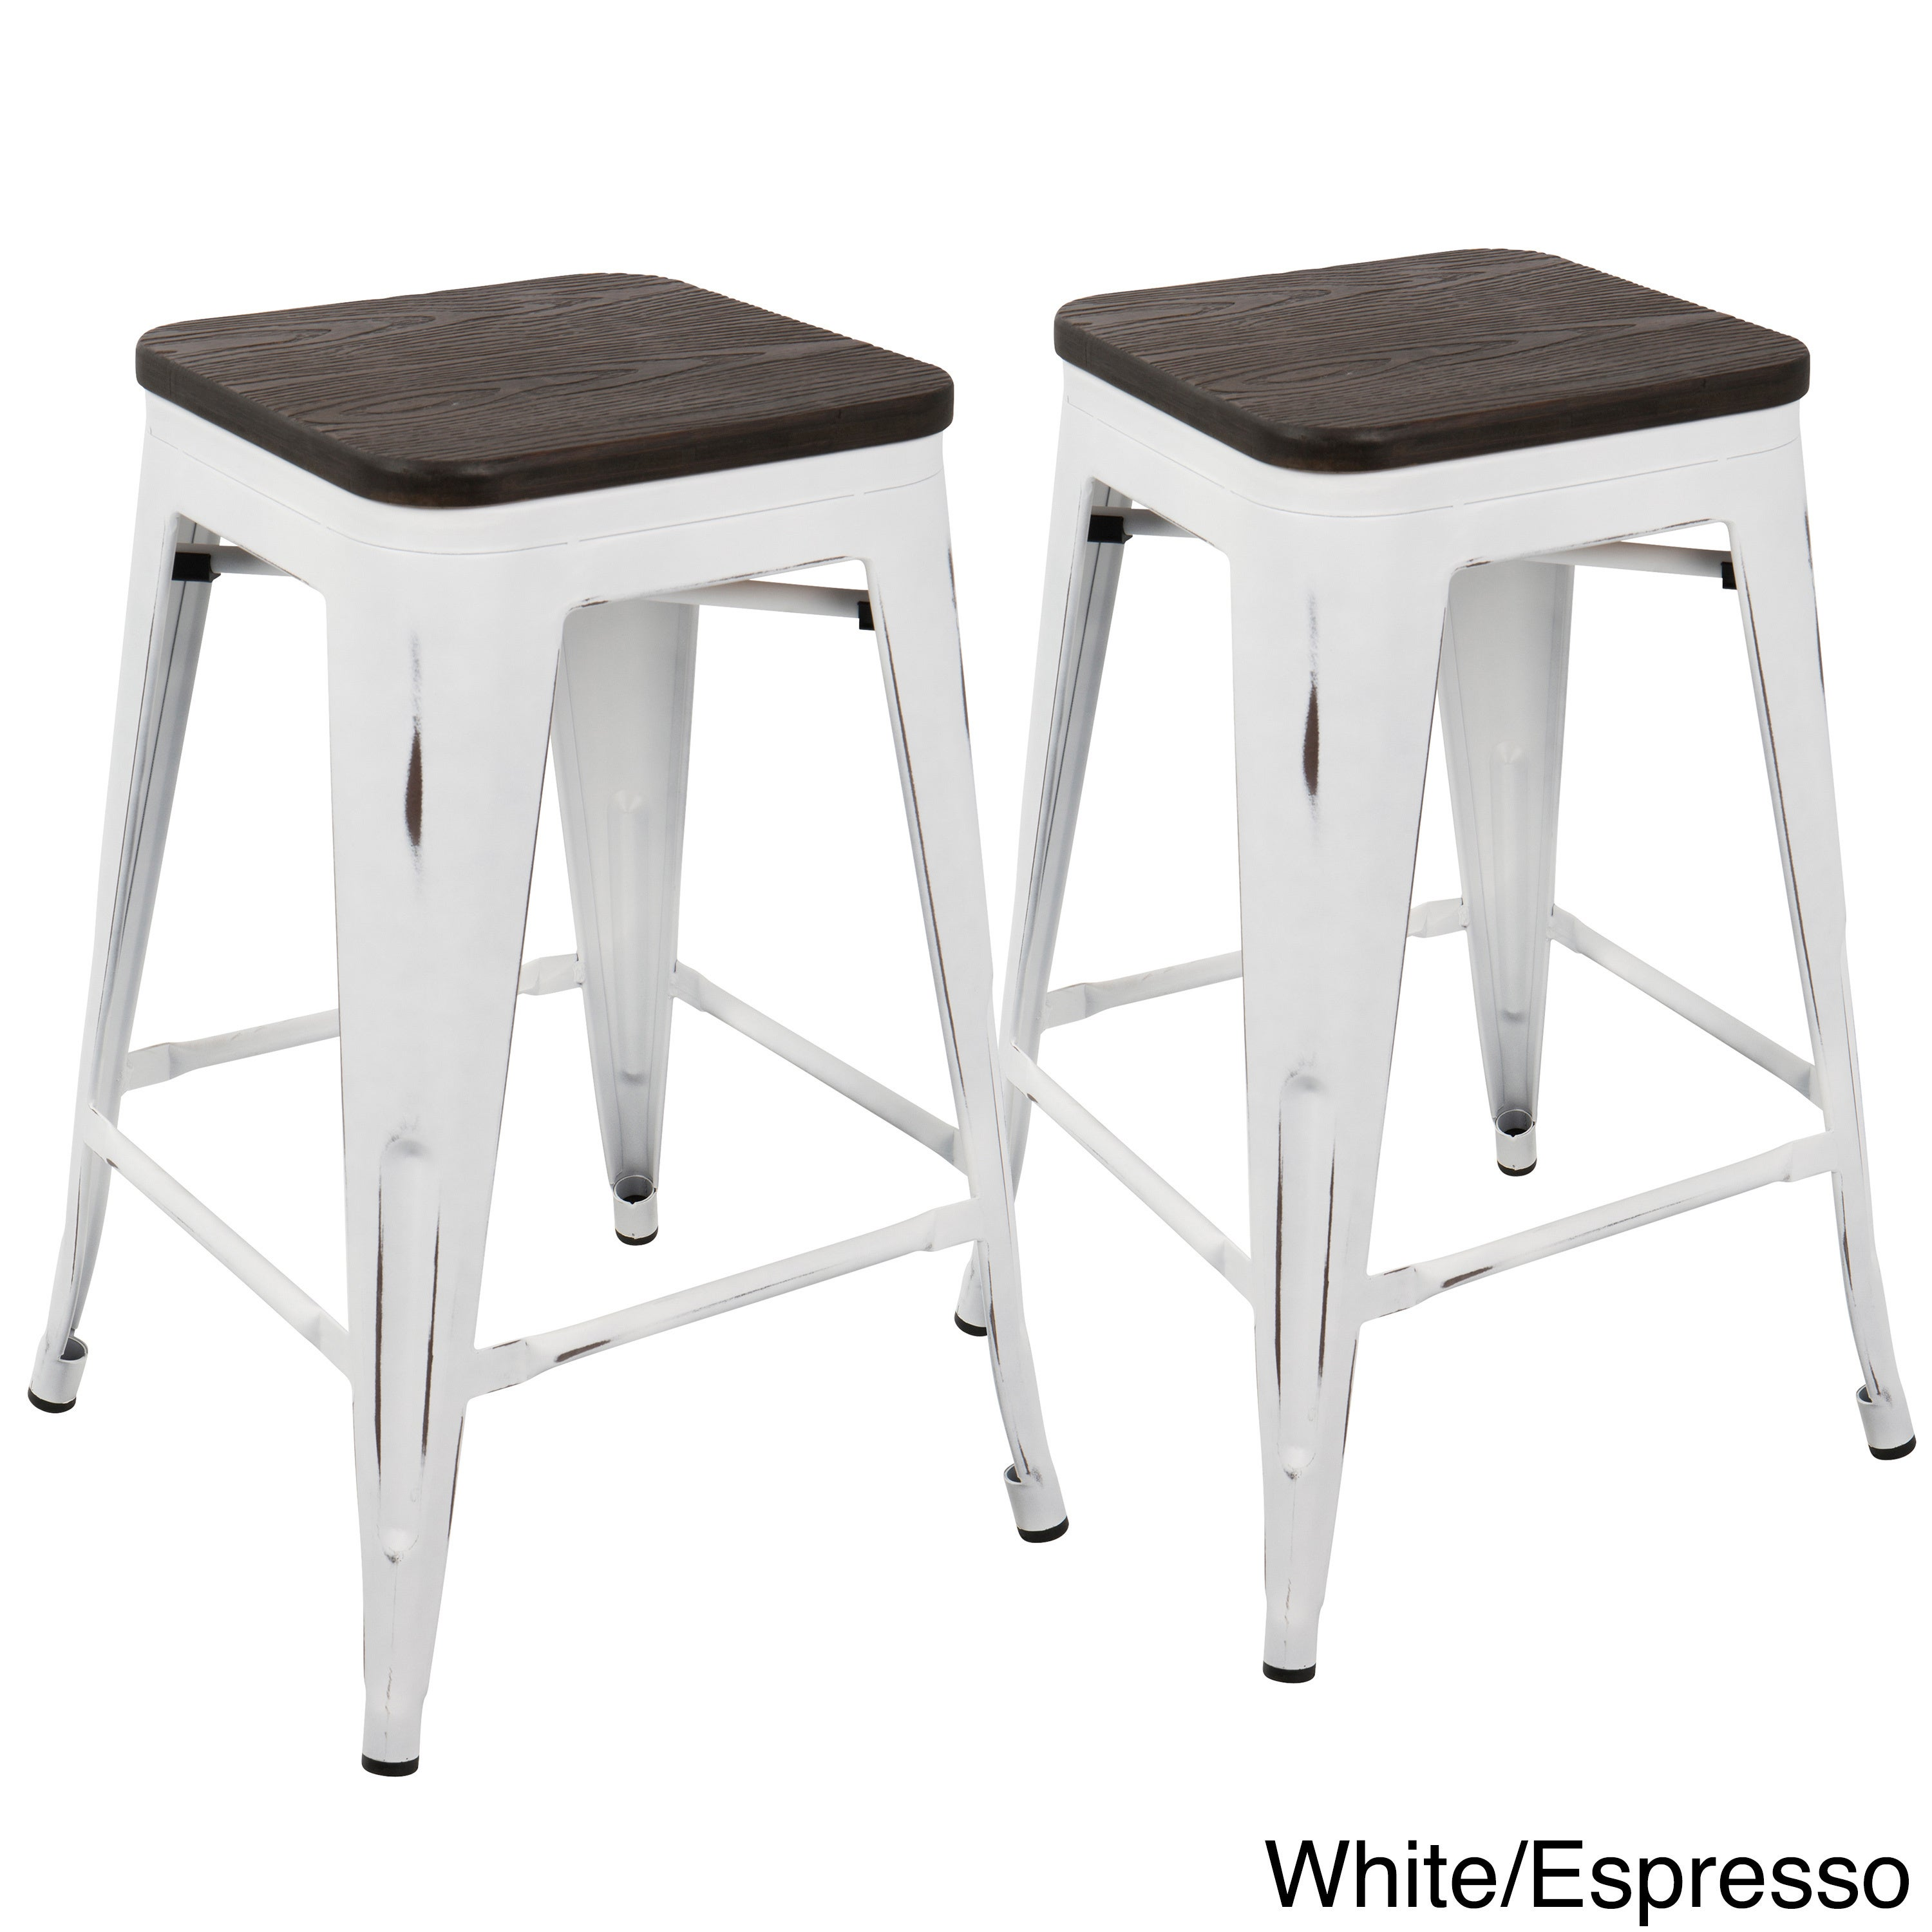 oregon industrial stackable inch counter stool (set of )  ebay - oregonindustrialstackableinchcounterstoolset